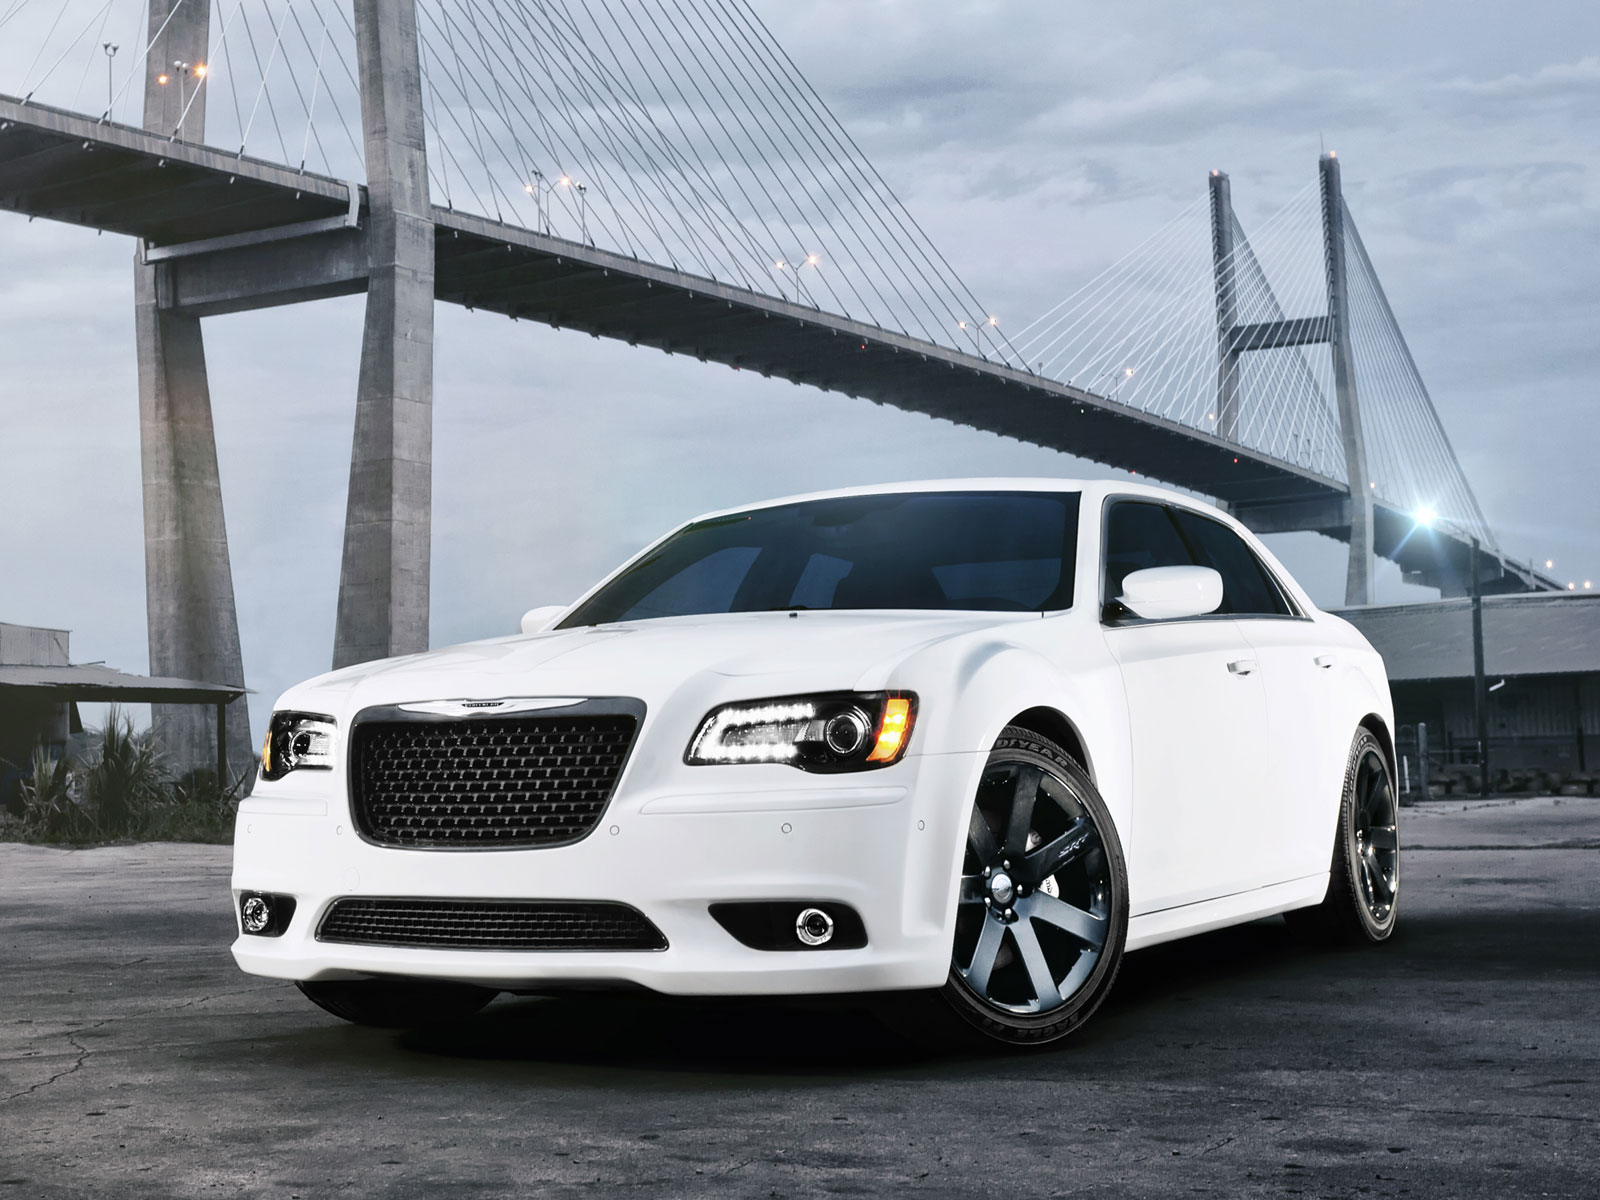 2019 Chrysler 300 Glacier photo - 1